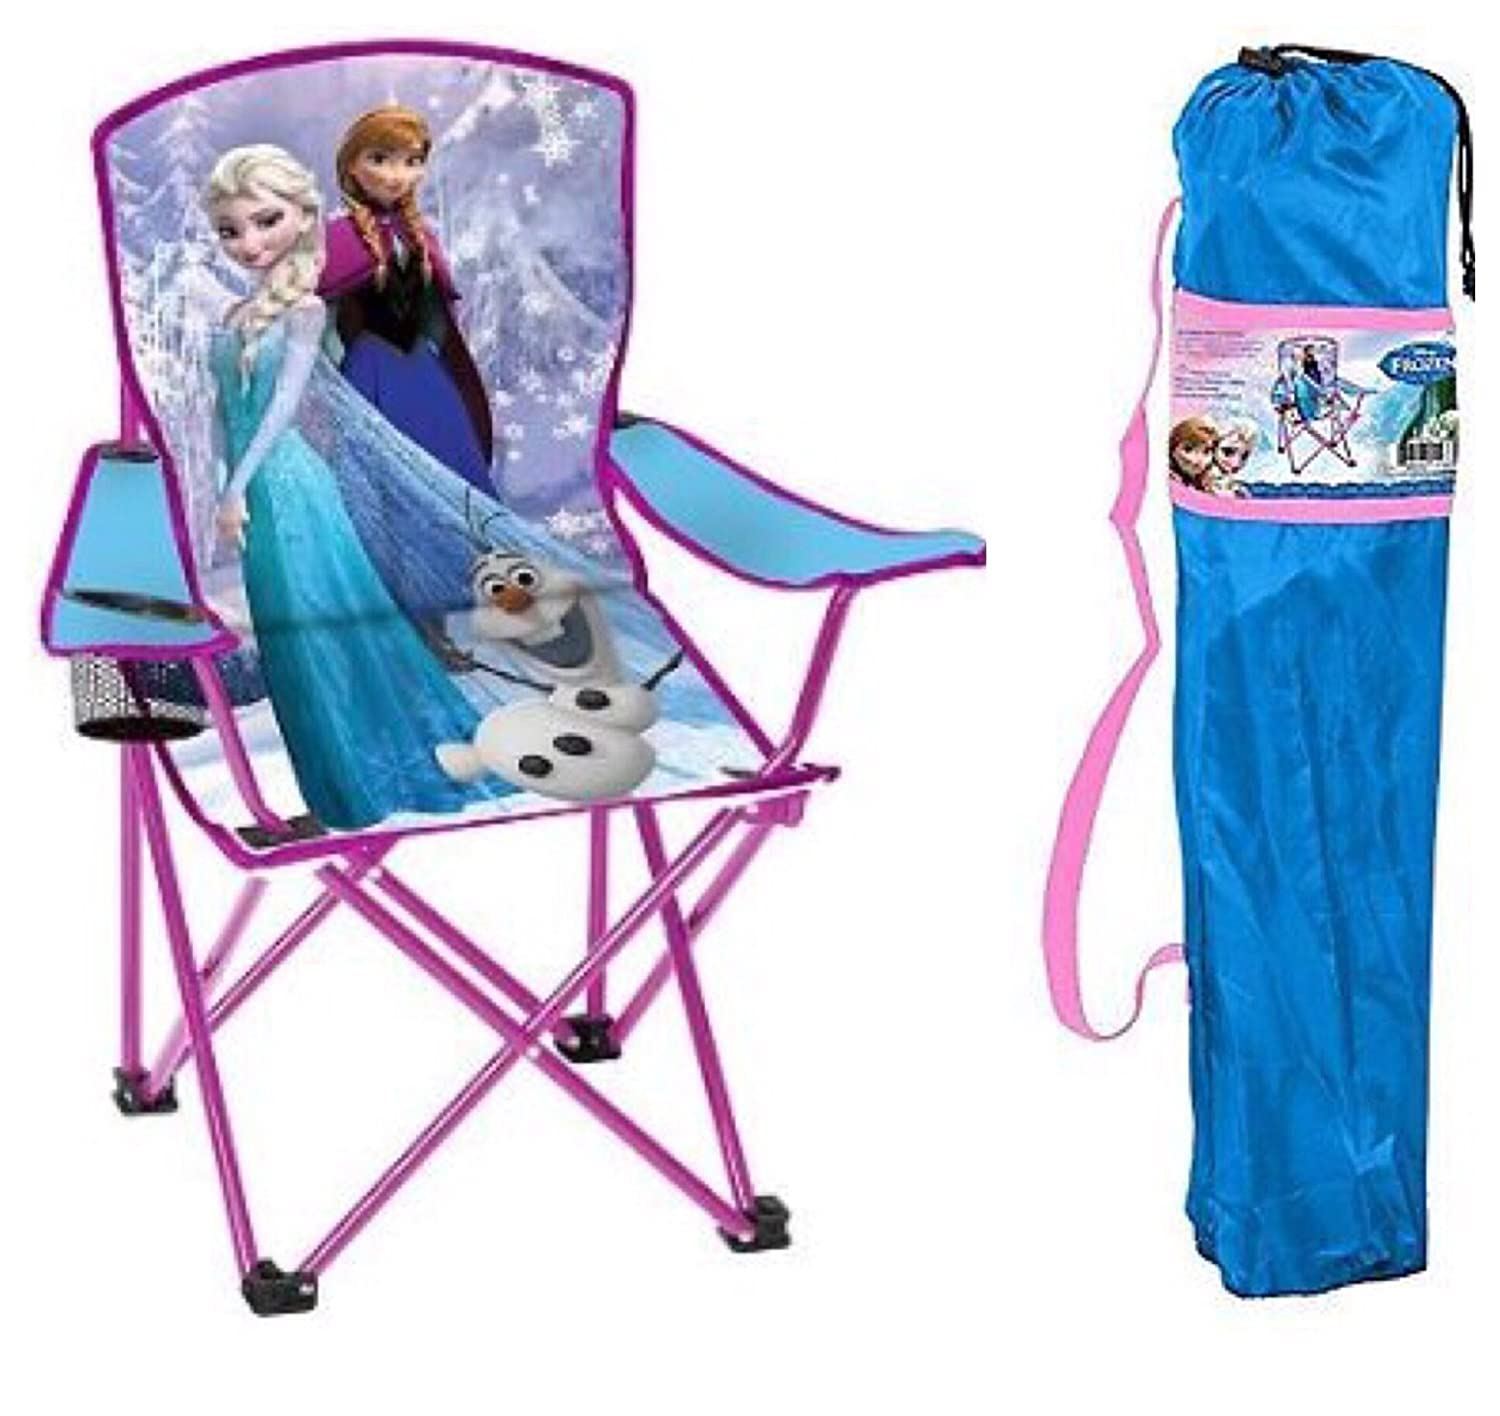 Amazon Disney Frozen Kids Folding Chair with Cup Holder and